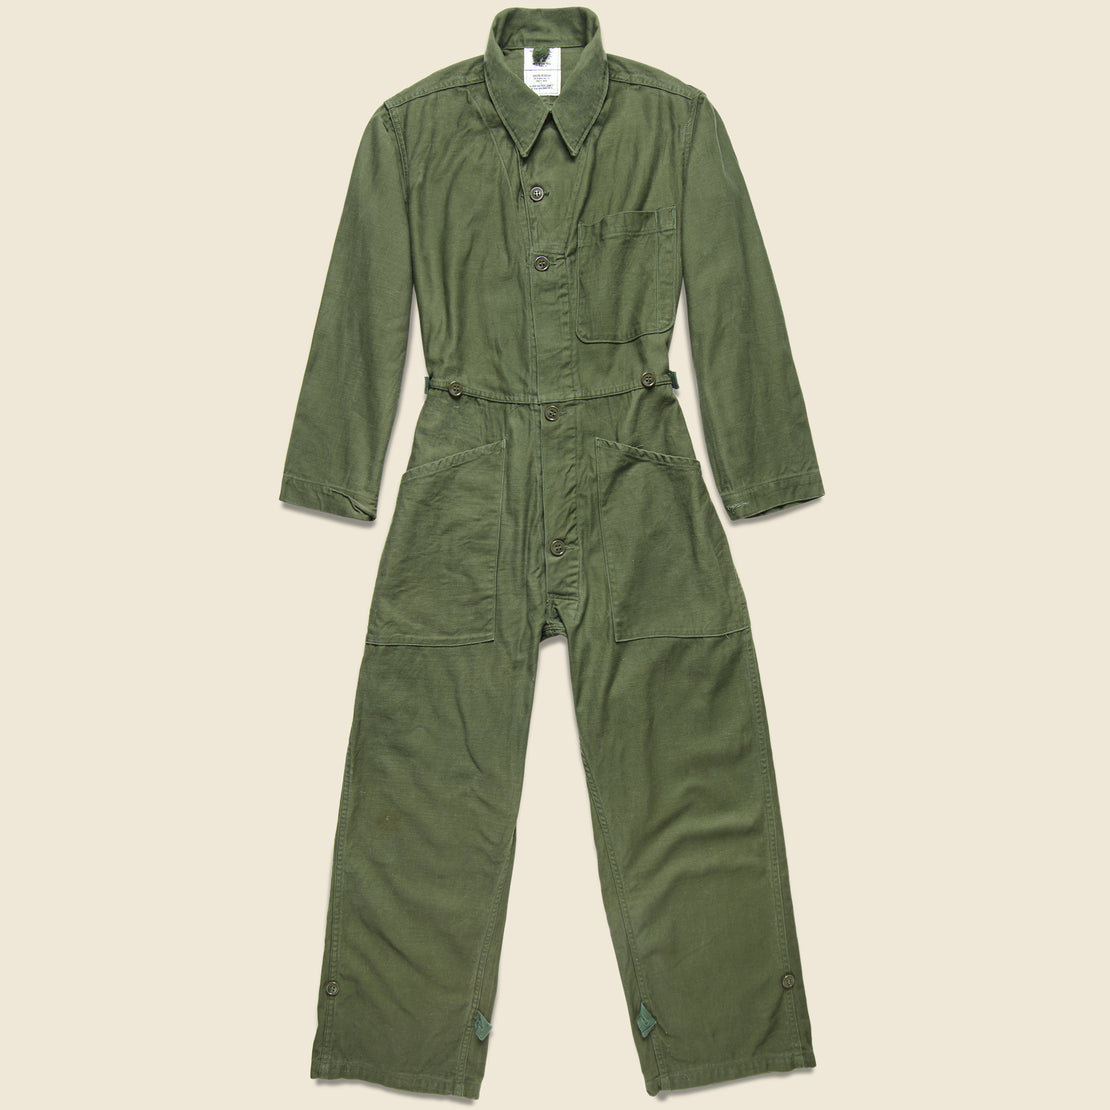 Vintage Cotton Sateen Type I Military Coverall - Olive Drab